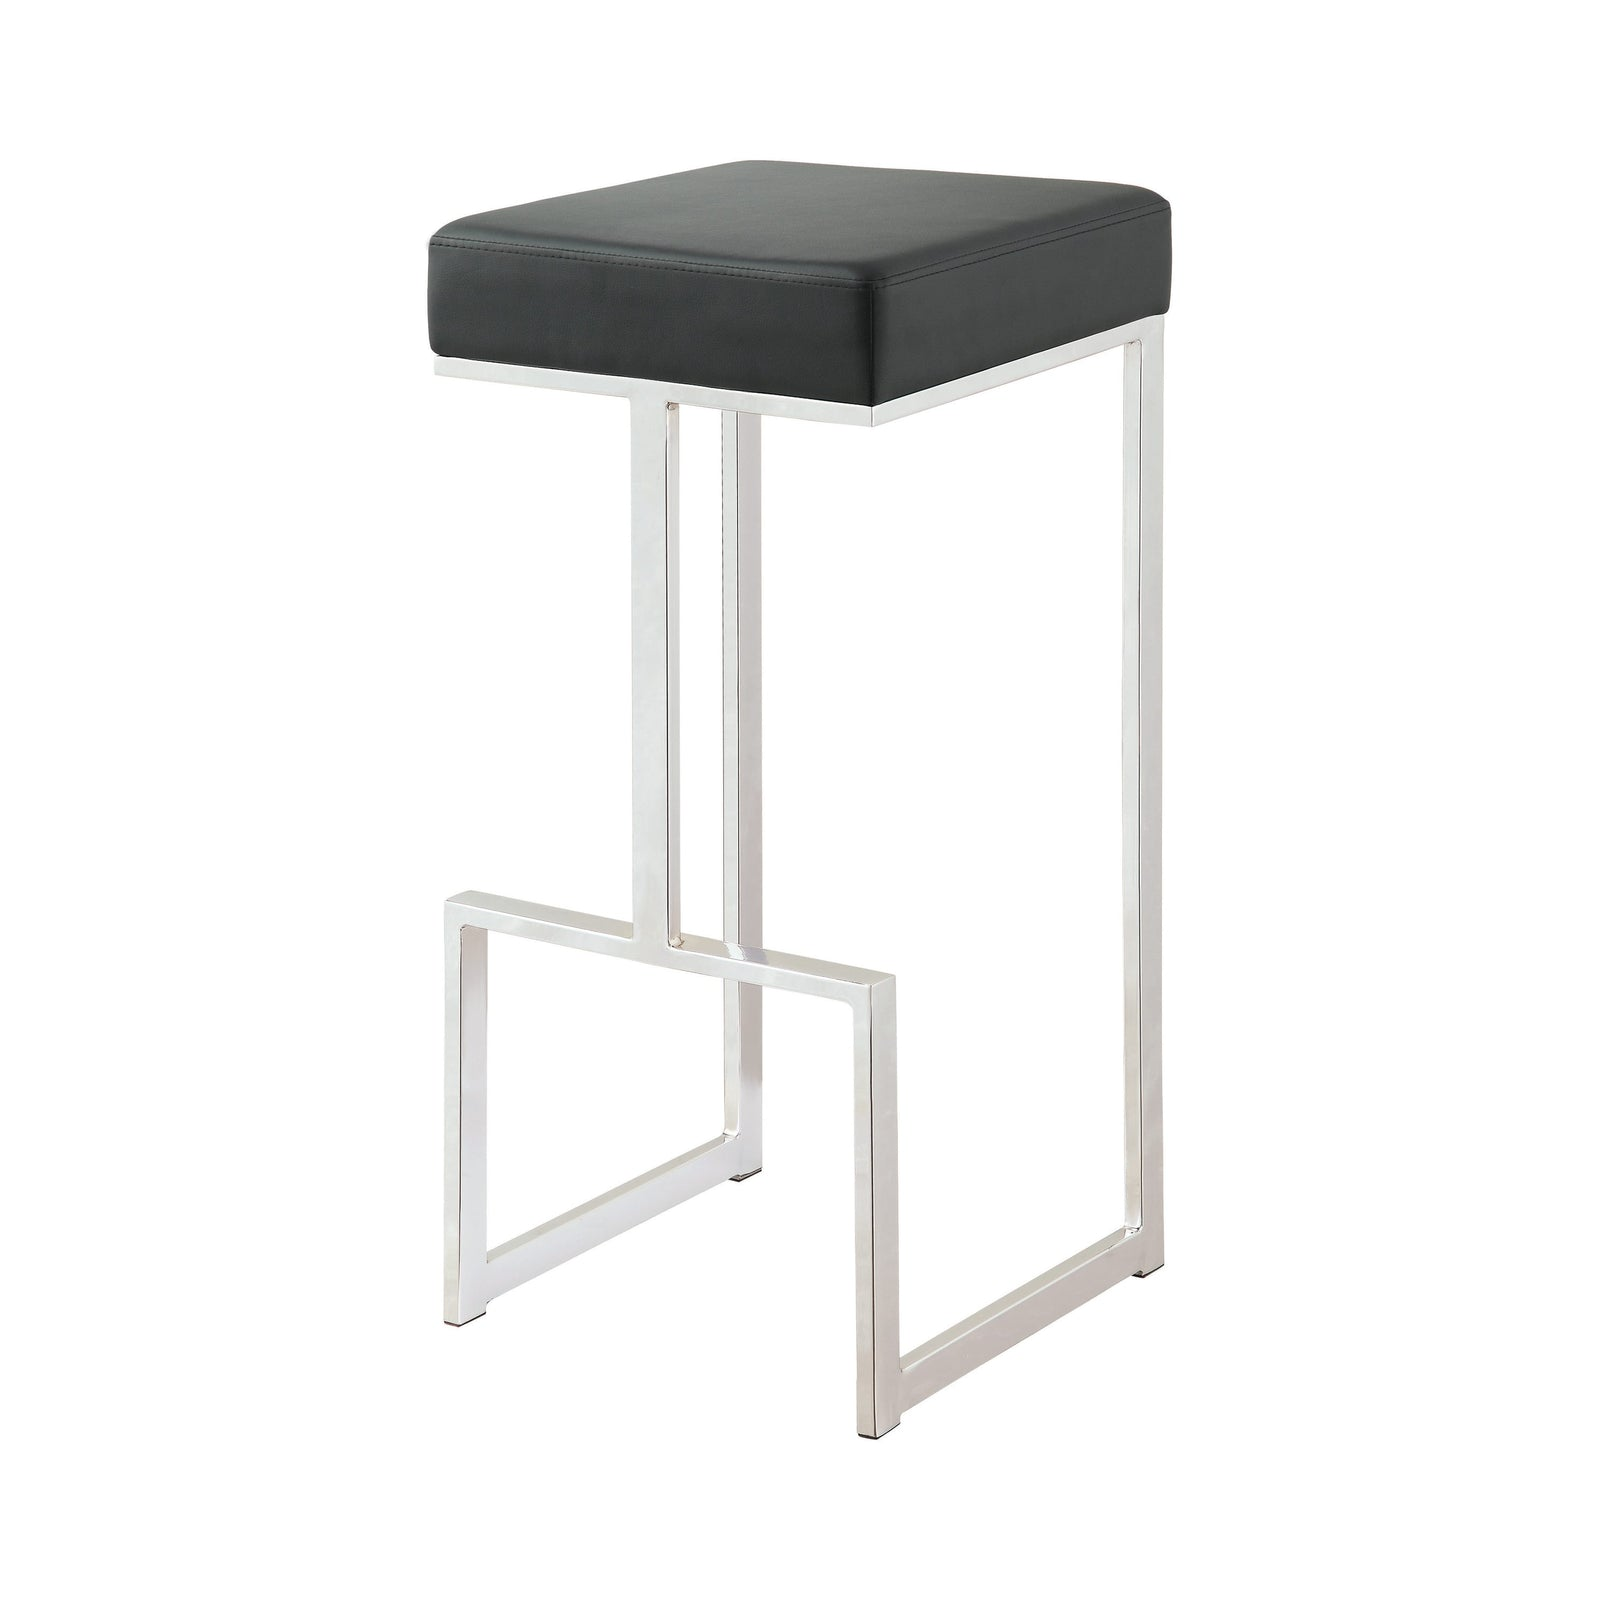 "Coaster 105263 | 29""H Modern Metal Base Square Bar Stool Counter Height Chair Black"